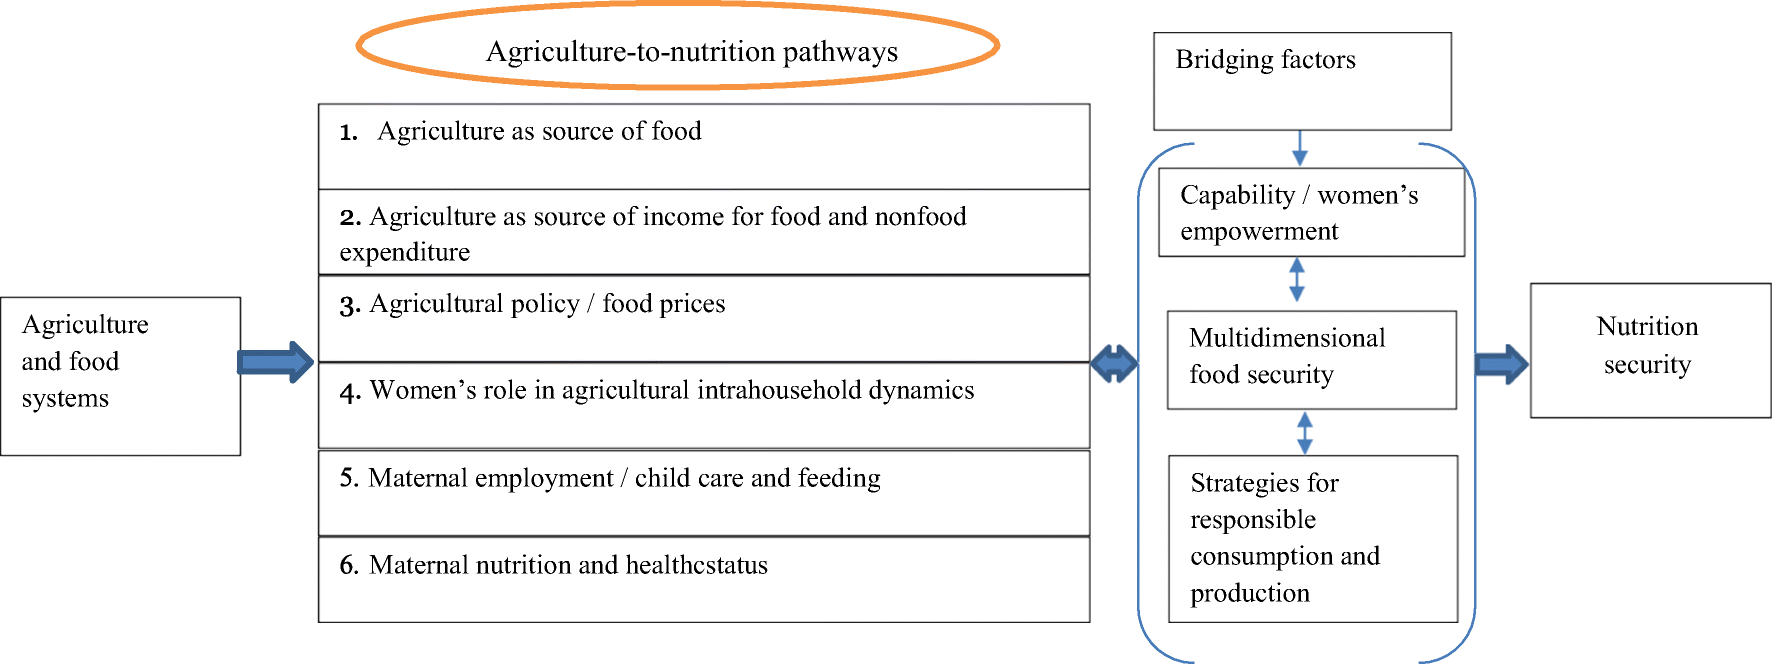 Pathways from agriculture-to-nutrition in India: implications for